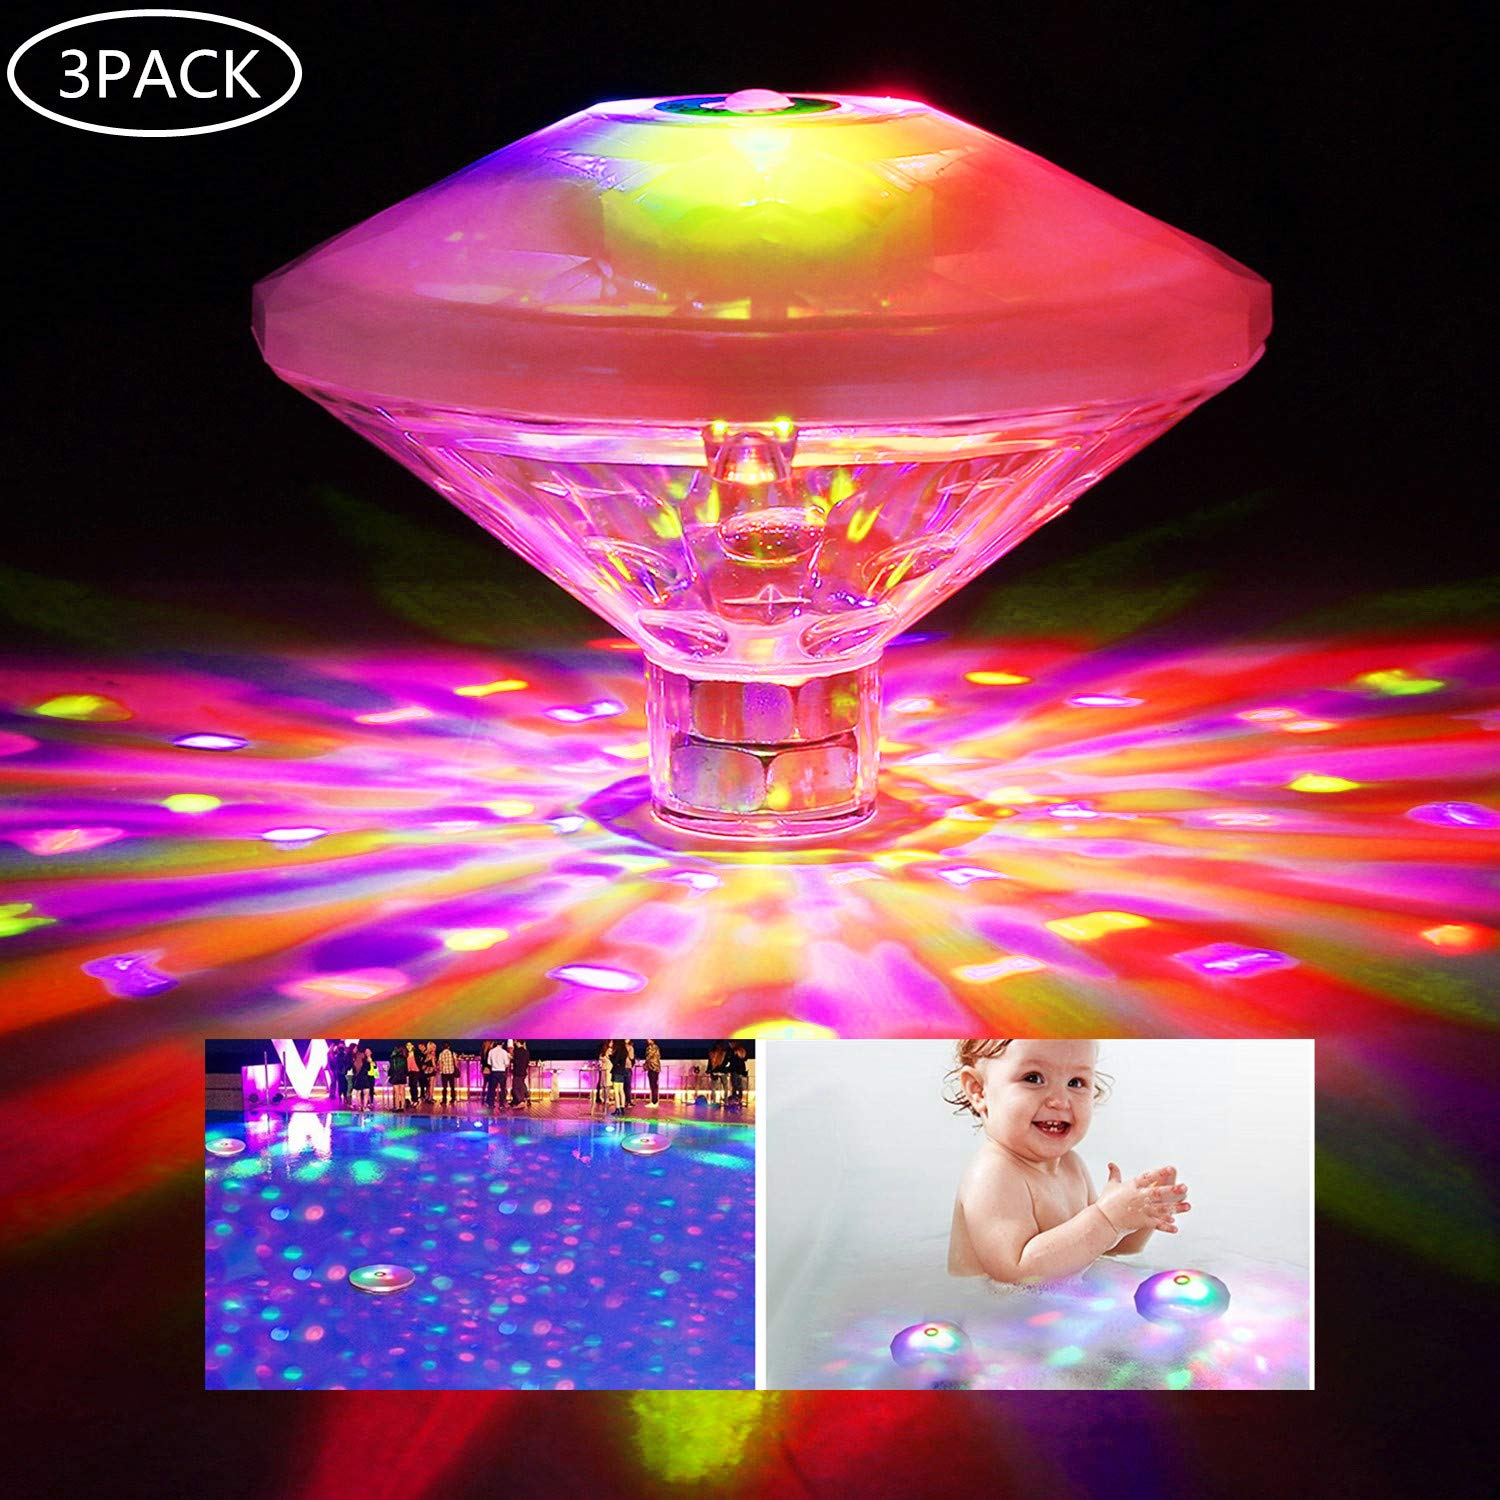 FTSTC Waterproof Swimming Baby Pool Lights - RGB, 7 Modes, Battery Operated Floating Pool Light Bulb Pool, Pond, Hot Tub Party Decorations (3PACK)